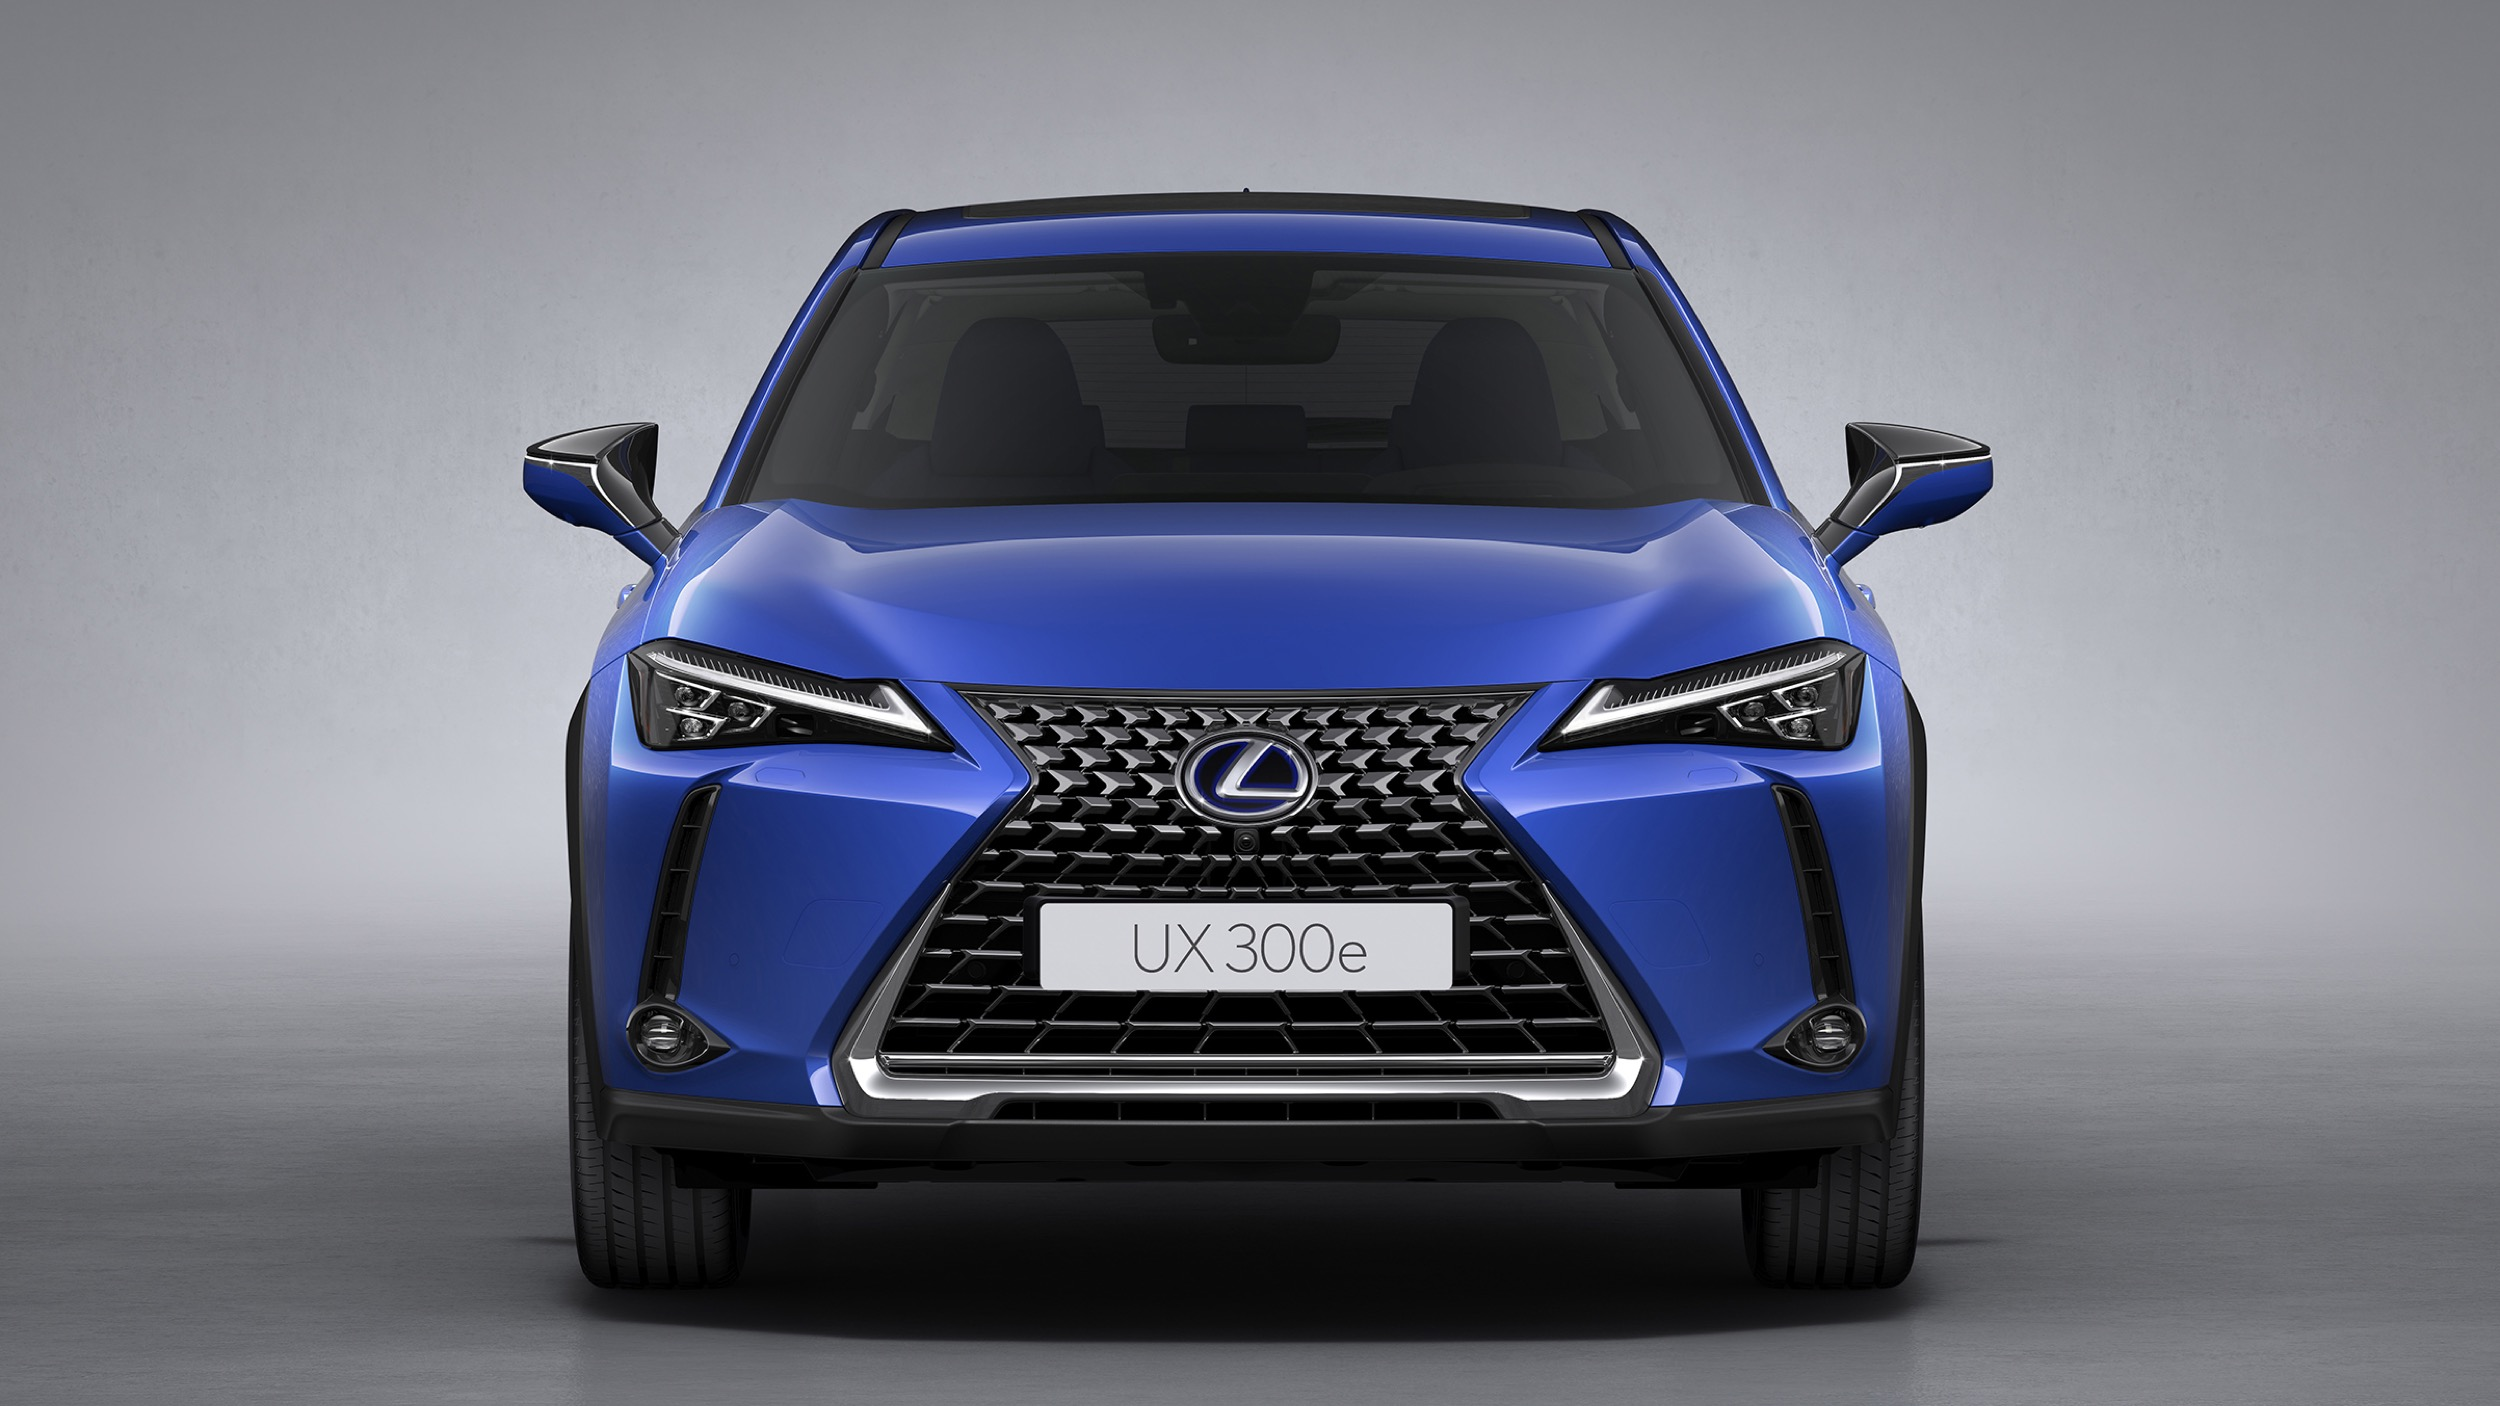 lexus ux 300e unveiled in china is firm's first production